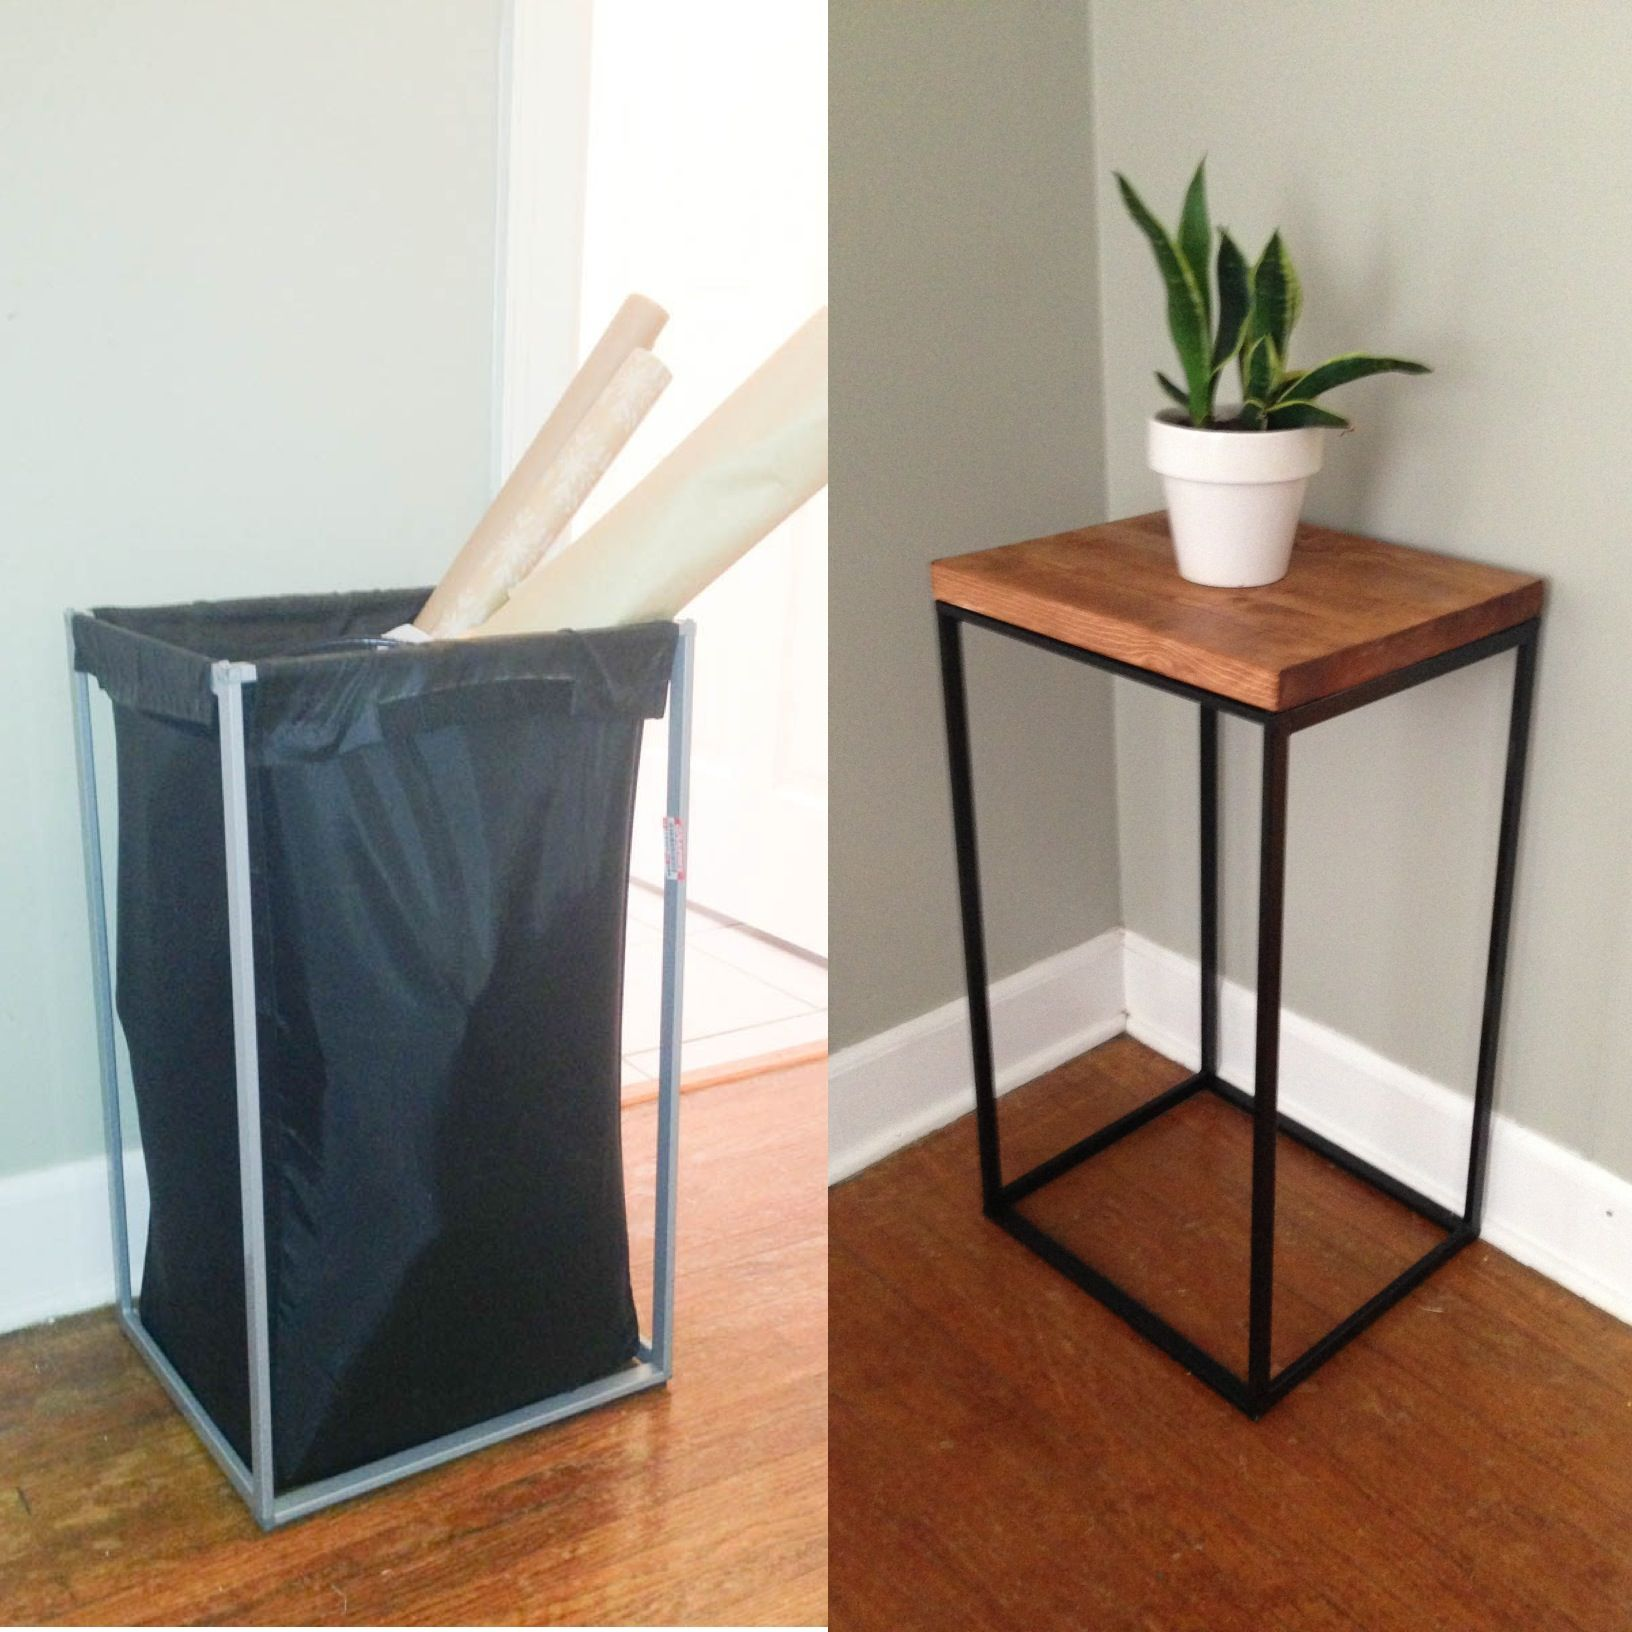 Ikea Diy Diy Side Table From Old Ikea Laundry Hamper The Clever